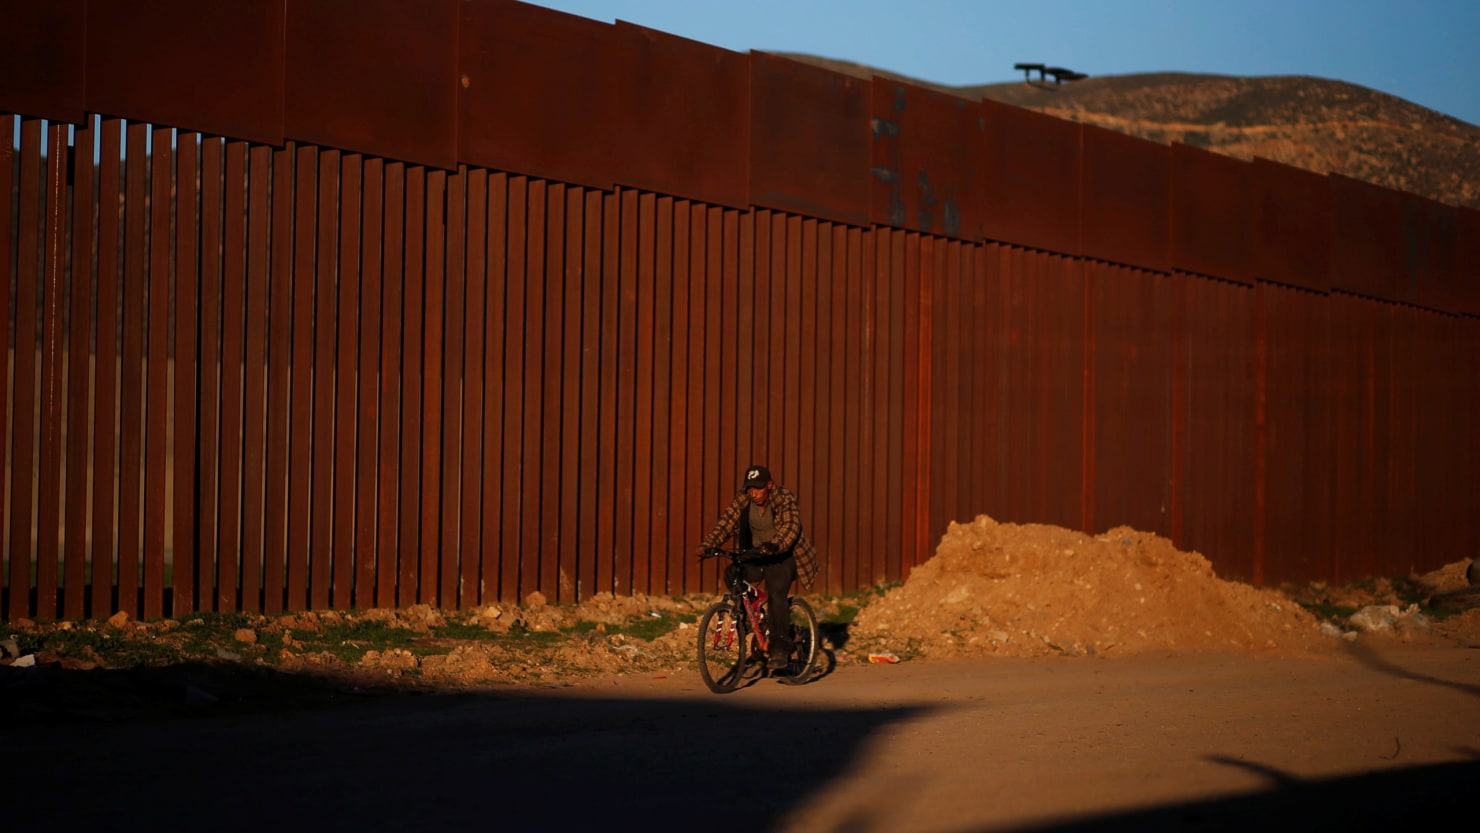 Only 6 Immigrants on Terror List Stopped Crossing the U.S.-Mexico Border in First Half of FY 2018: NBC